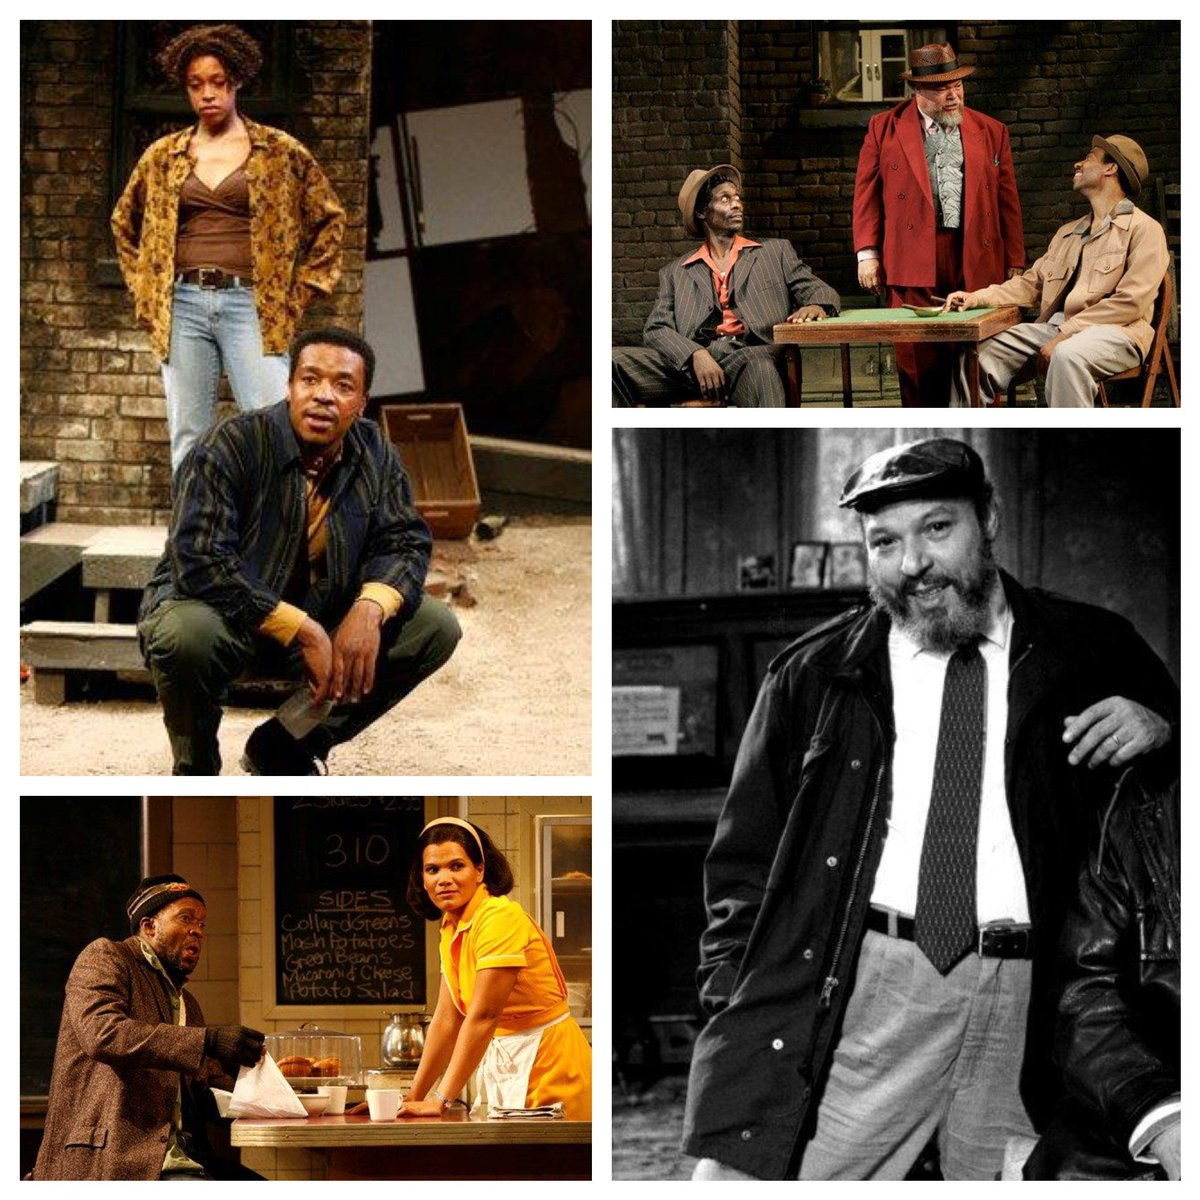 Happy birthday to our Legacy playwright, August Wilson! August would have been 71 today. We miss him dearly. https://t.co/fXvHauQjTr